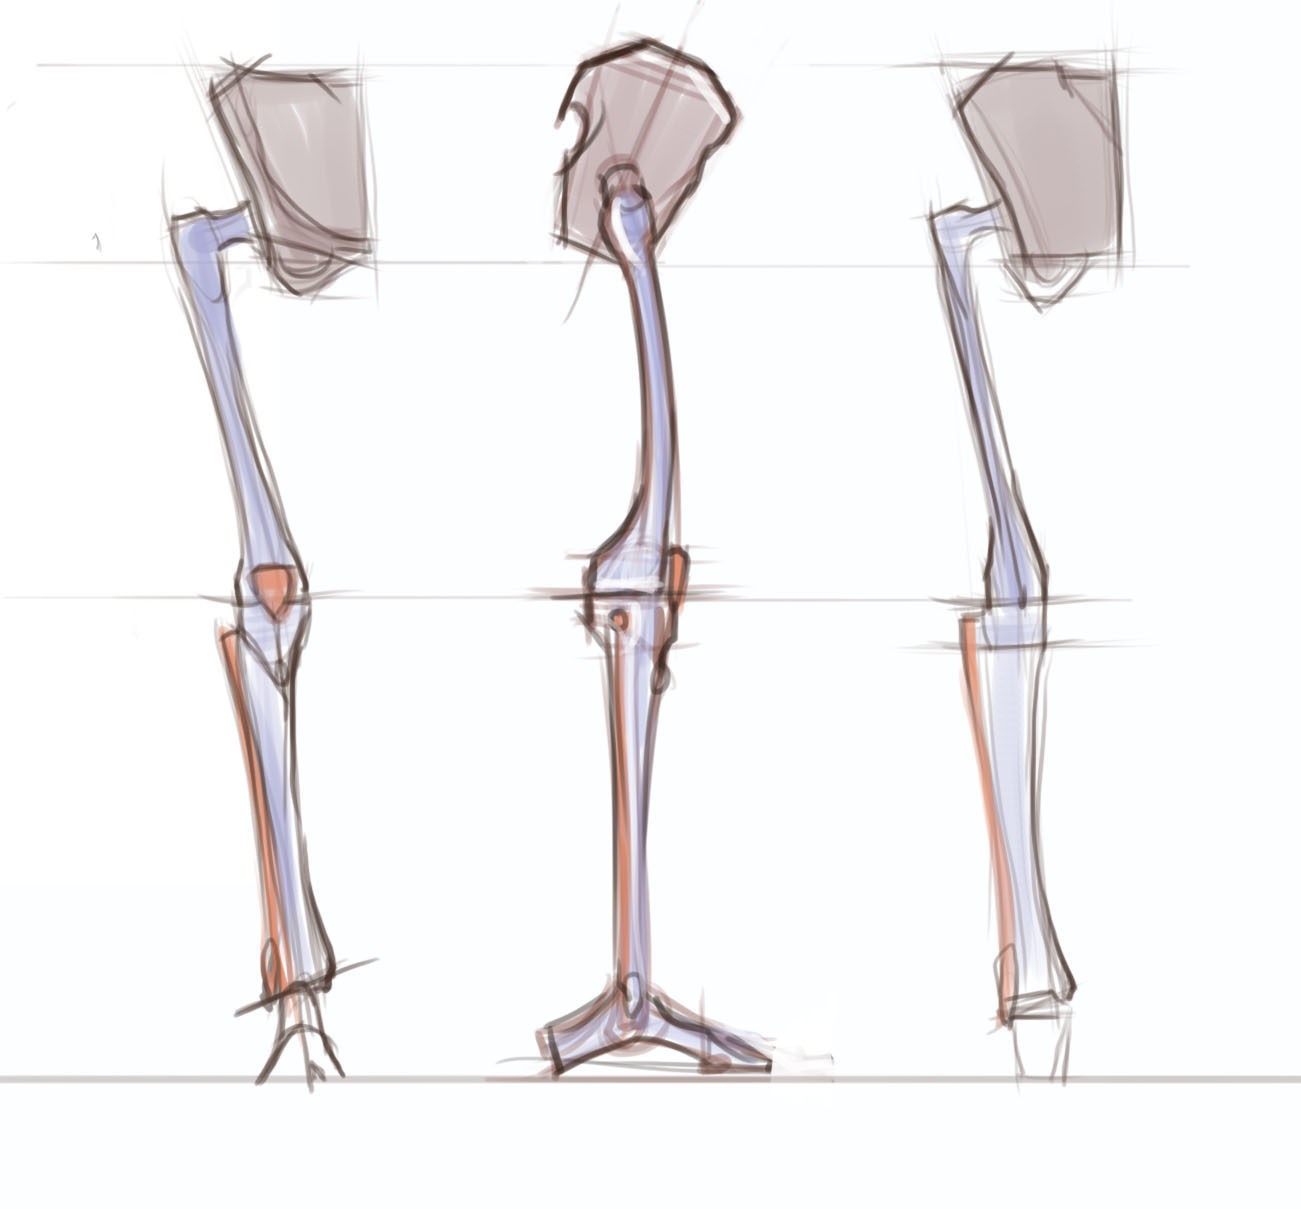 figuredrawing.info news: Leg anatomy - process